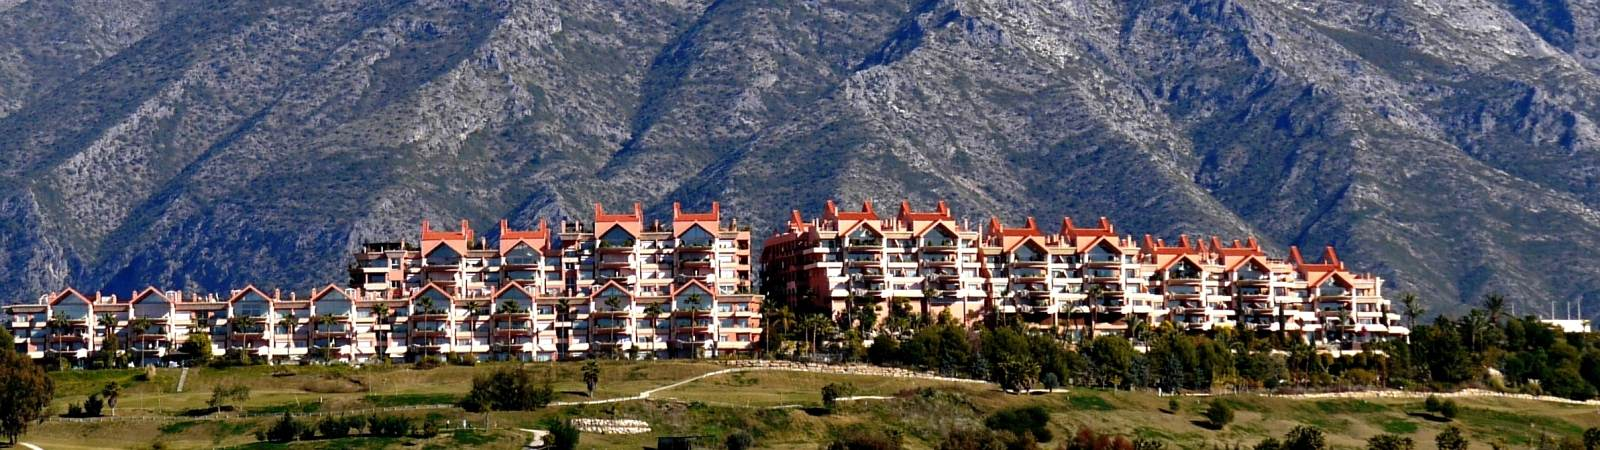 Magna Marbella Apartments for sale